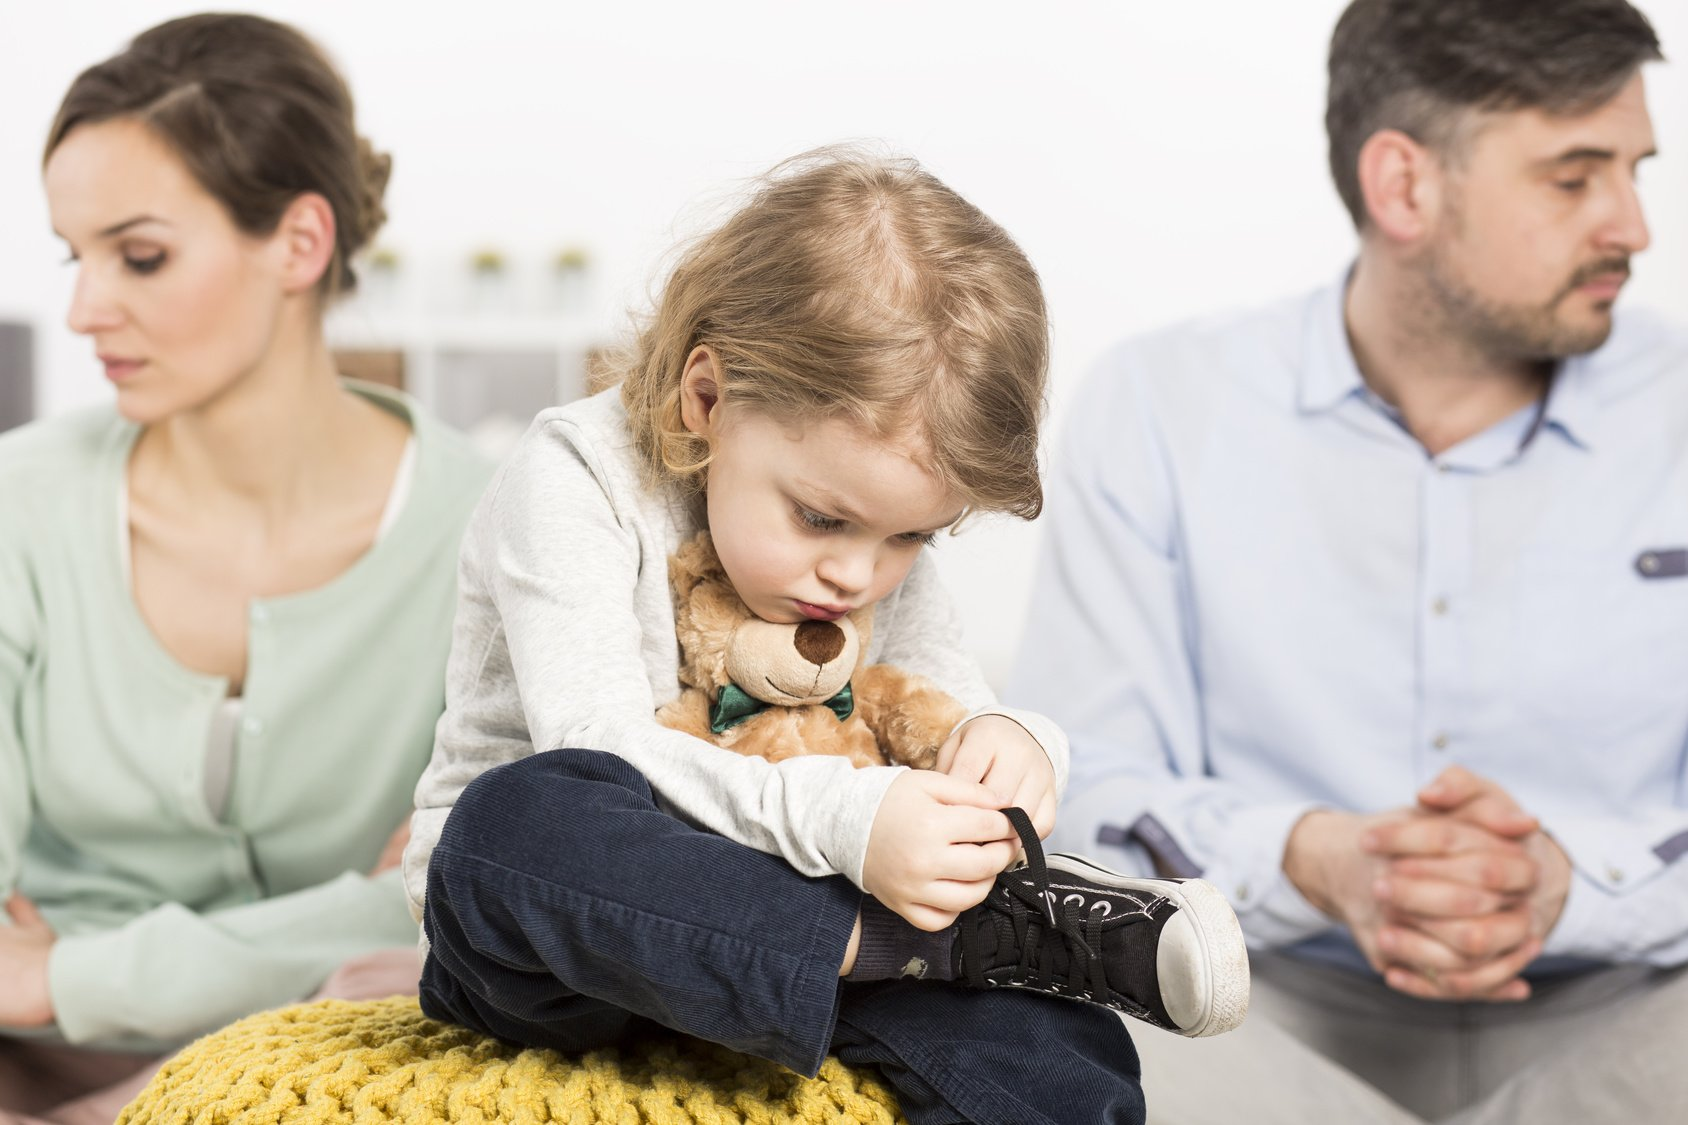 5 Things To Avoid Doing To Your Children When You Go